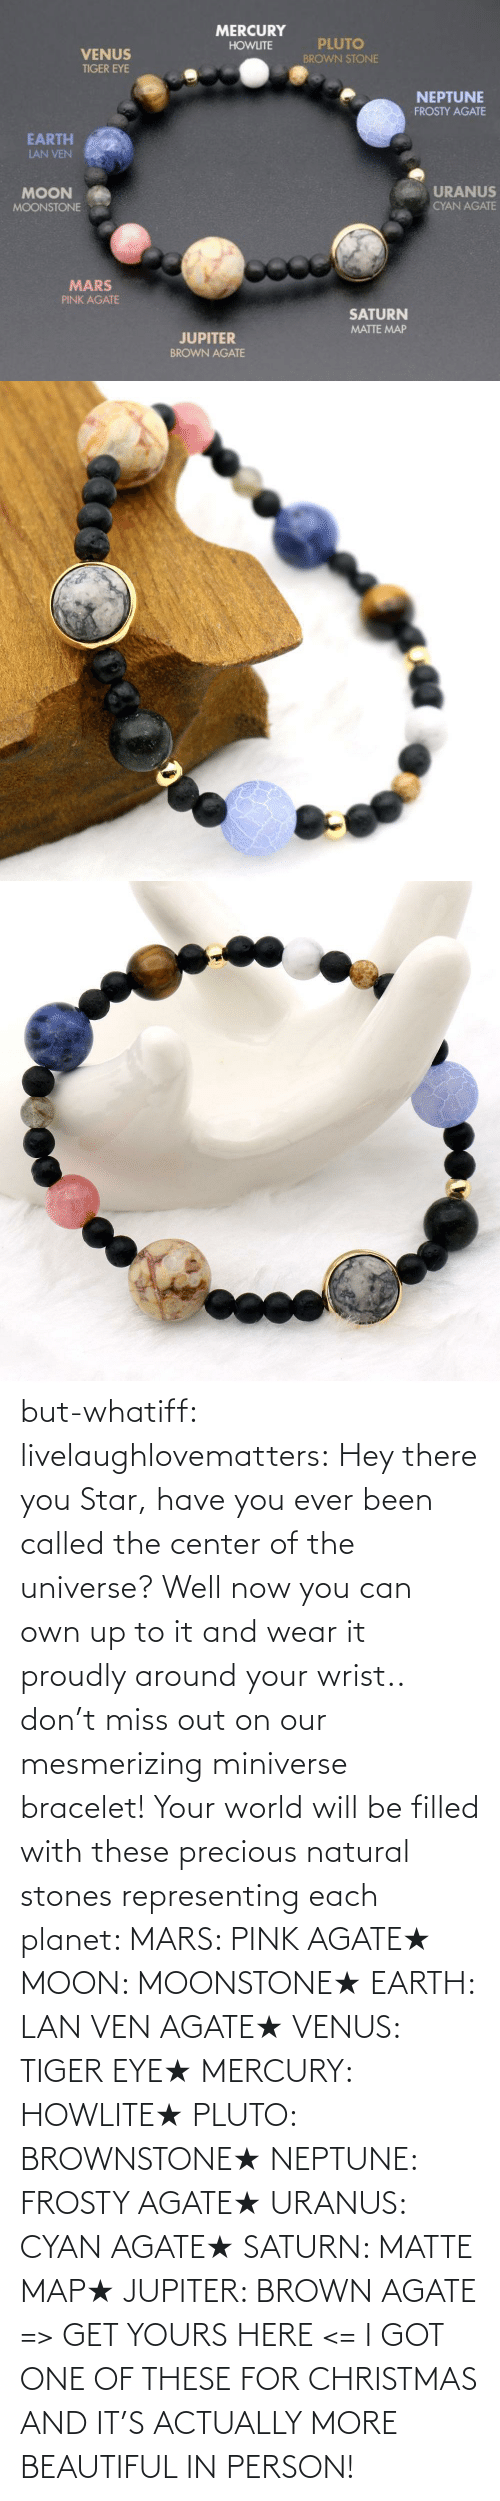 Actually: but-whatiff:  livelaughlovematters:  Hey there you Star, have you ever been called the center of the universe? Well now you can own up to it and wear it proudly around your wrist.. don't miss out on our mesmerizing miniverse bracelet! Your world will be filled with these precious natural stones representing each planet:  MARS: PINK AGATE★ MOON: MOONSTONE★ EARTH: LAN VEN AGATE★ VENUS: TIGER EYE★ MERCURY: HOWLITE★ PLUTO: BROWNSTONE★ NEPTUNE: FROSTY AGATE★ URANUS: CYAN AGATE★ SATURN: MATTE MAP★ JUPITER: BROWN AGATE => GET YOURS HERE <=  I GOT ONE OF THESE FOR CHRISTMAS AND IT'S ACTUALLY MORE BEAUTIFUL IN PERSON!